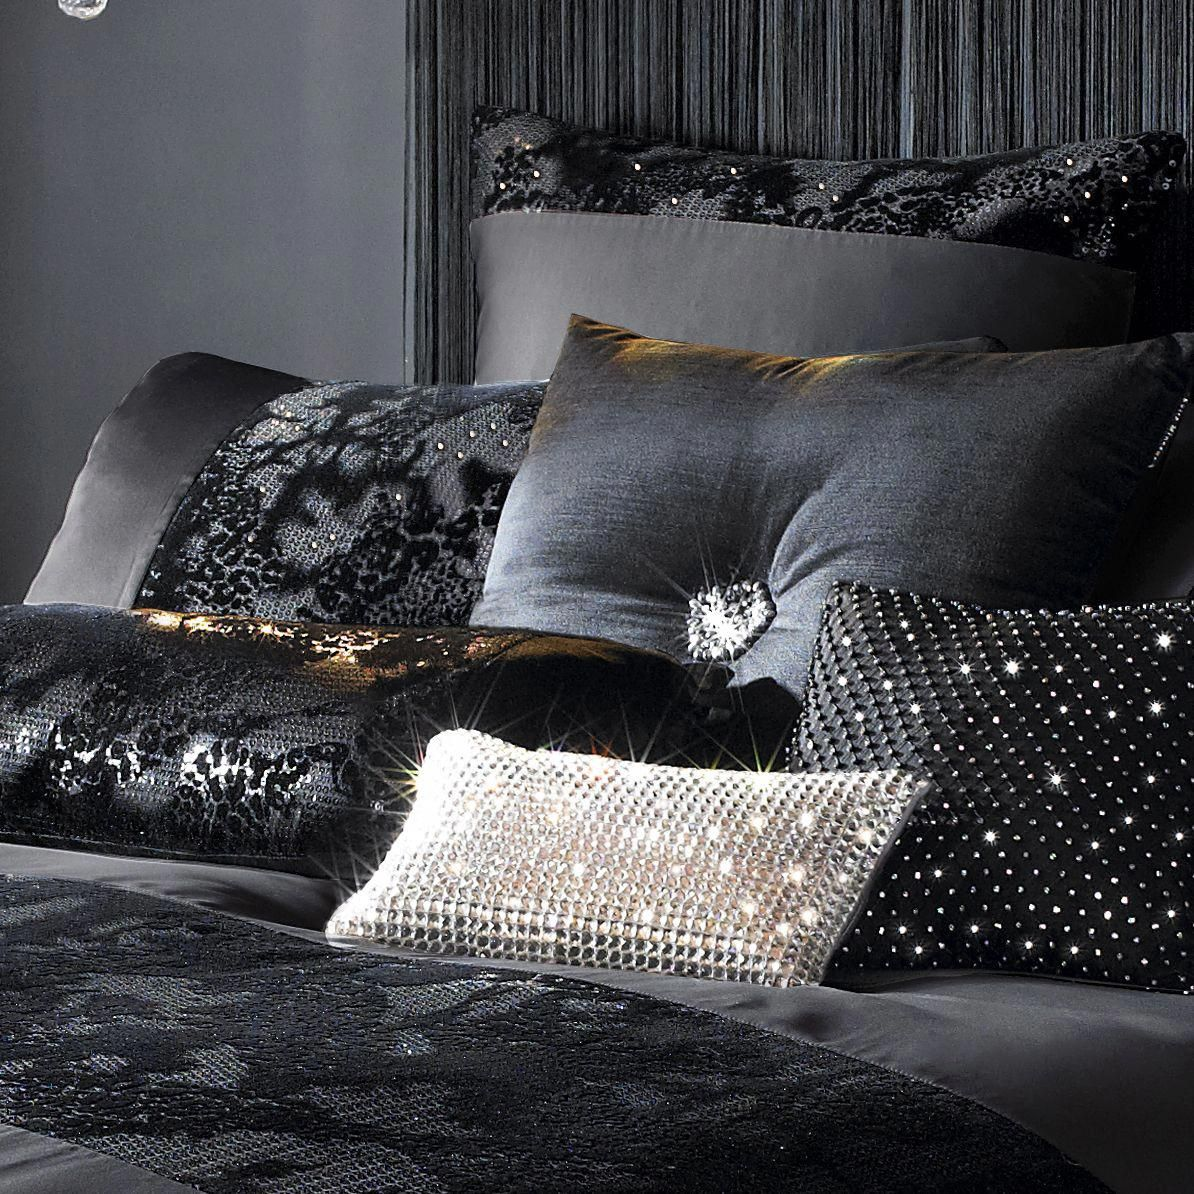 Pin by Χαρα Παναγιωτης on Σαλόνι Luxurious bedrooms